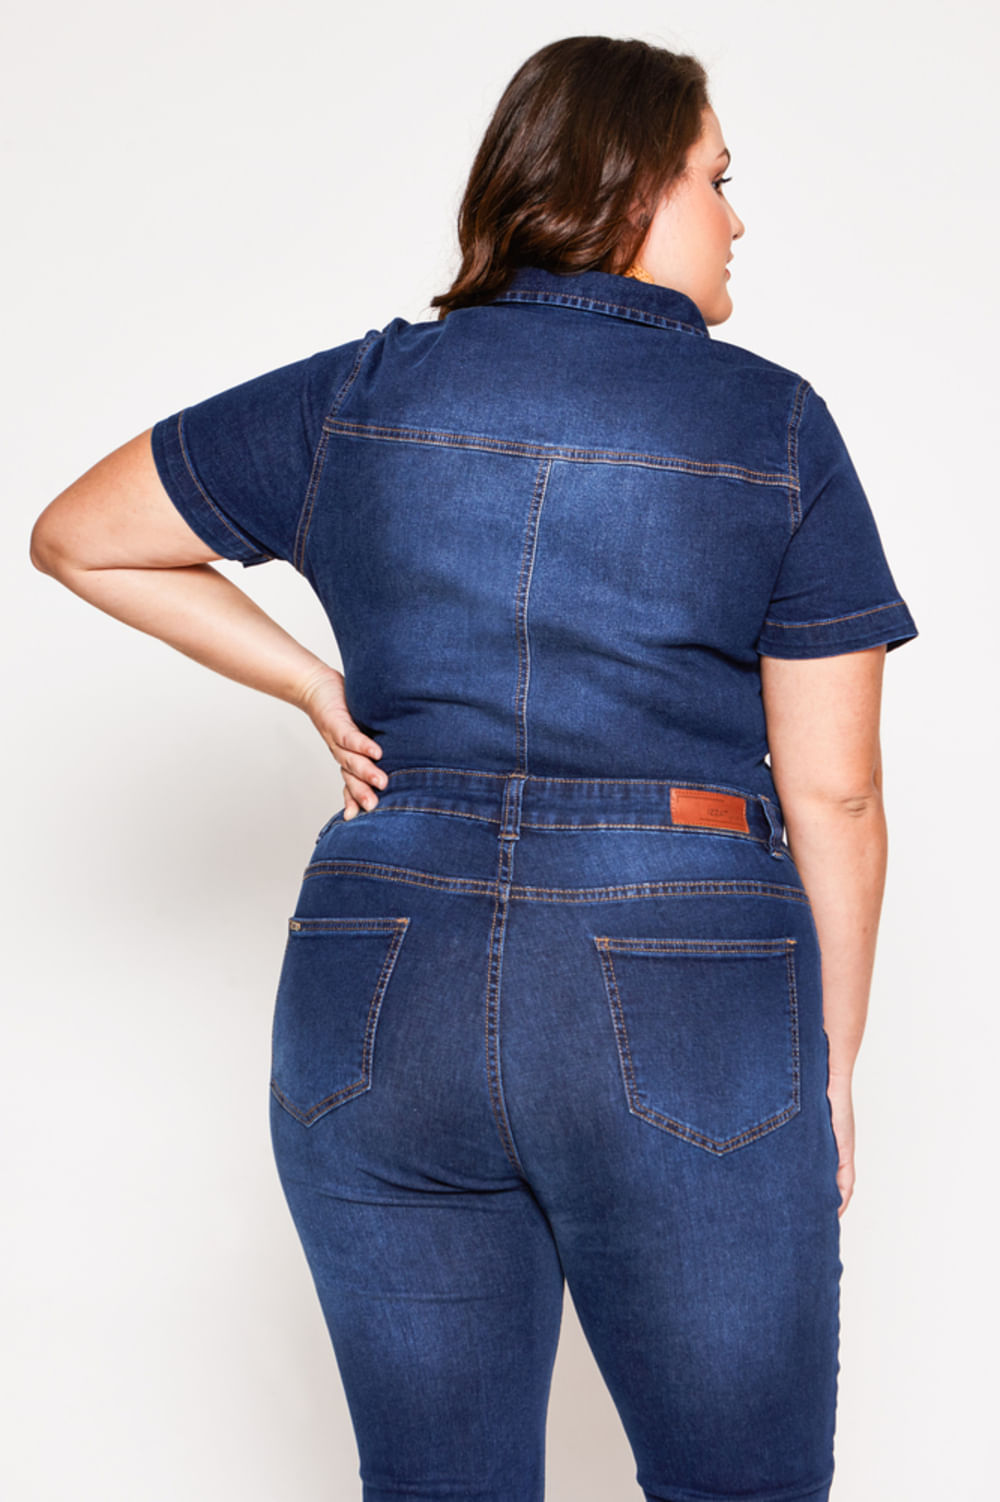 0910317_Macacao_Jeans_Plus_Size_Helen_3